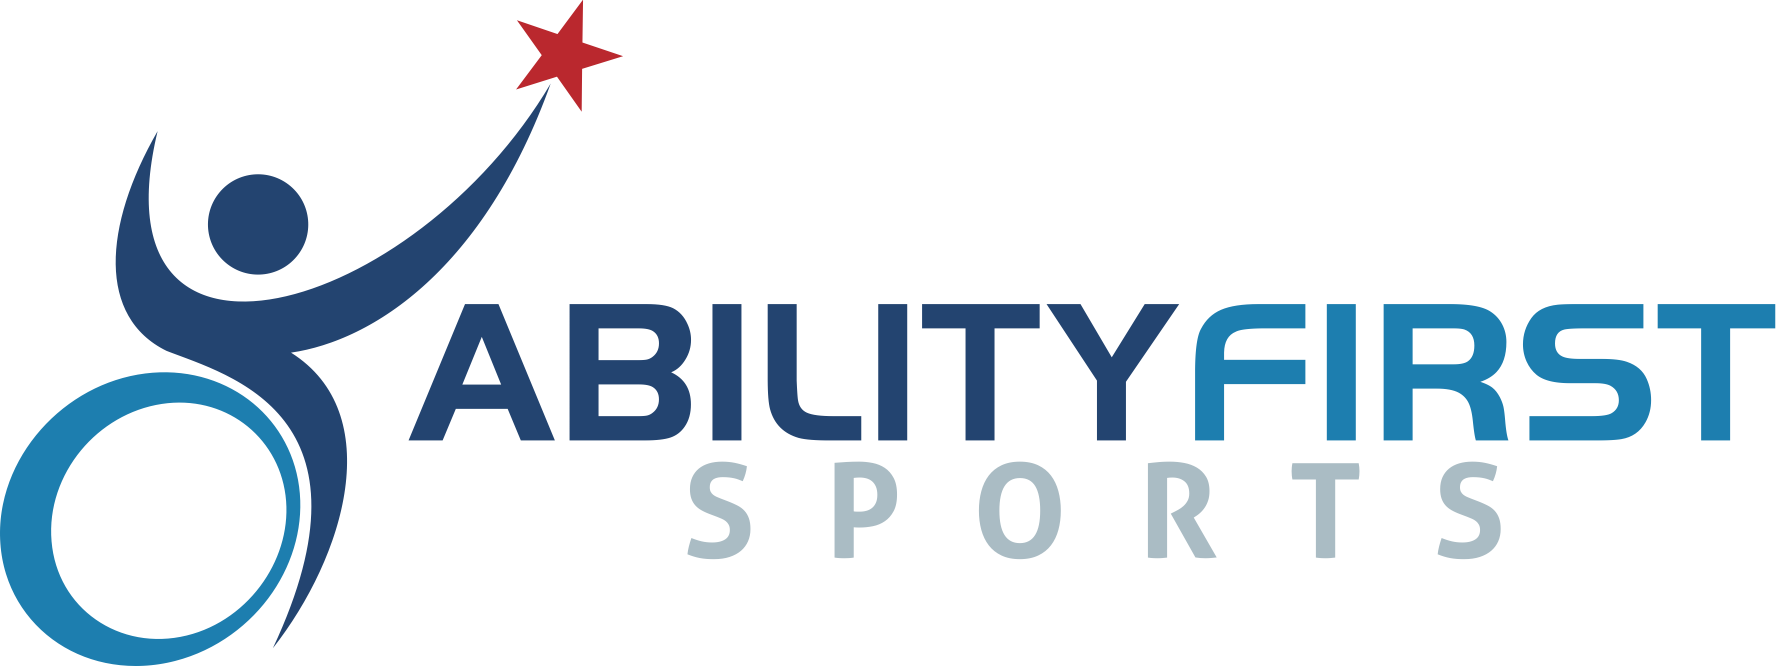 Ability First Sports